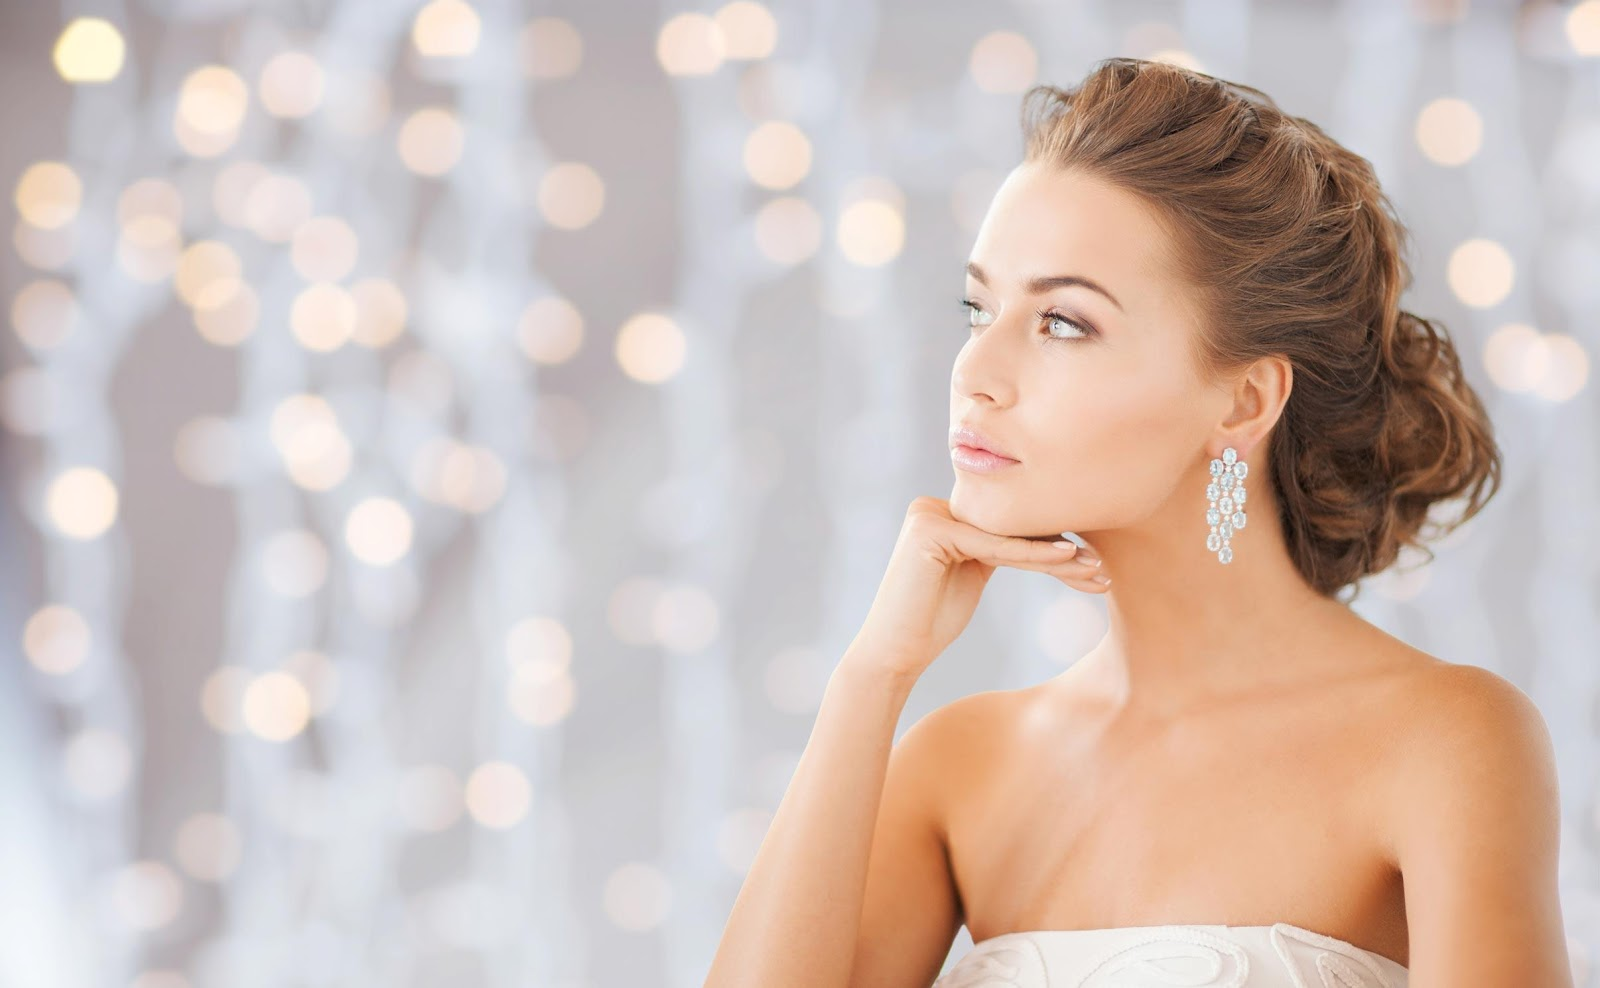 D:\Работа\SEO\GUEST POSTS\POSTS 2020\03.02.2020\Ryan 12 The Best Beauty Products for Brides-to-Be\shutterstock_341164493.jpg